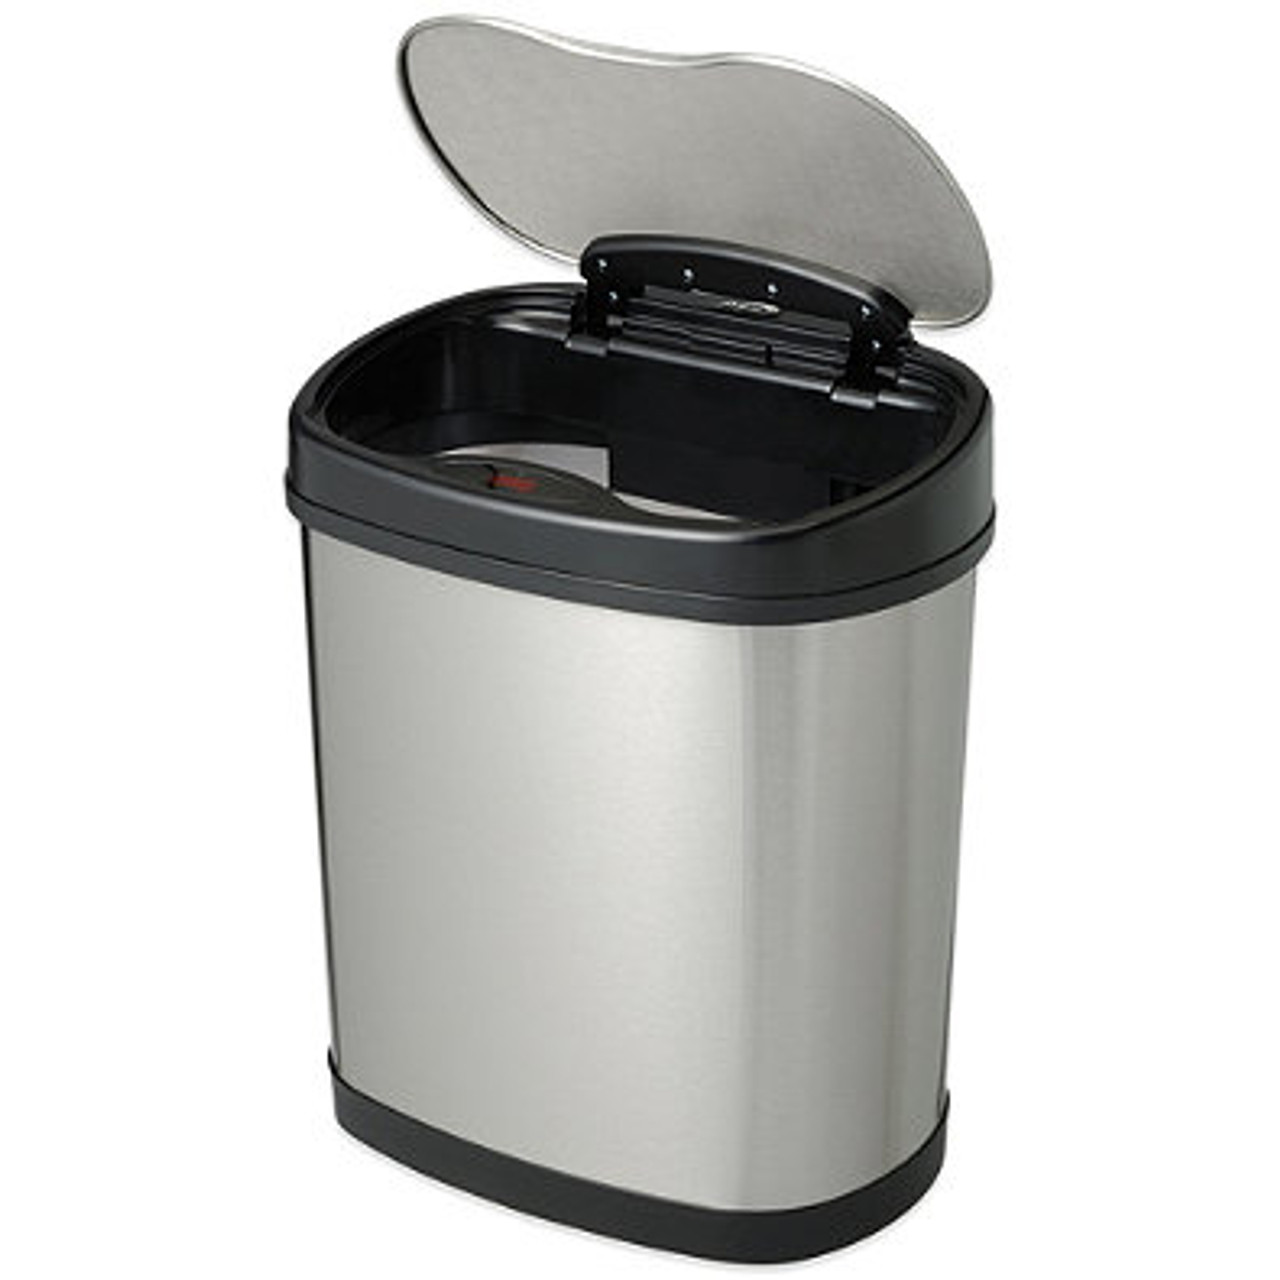 3 Gallon Touchless Automatic Bathroom Trash Can Stainless Steel DZT-12-13 Open